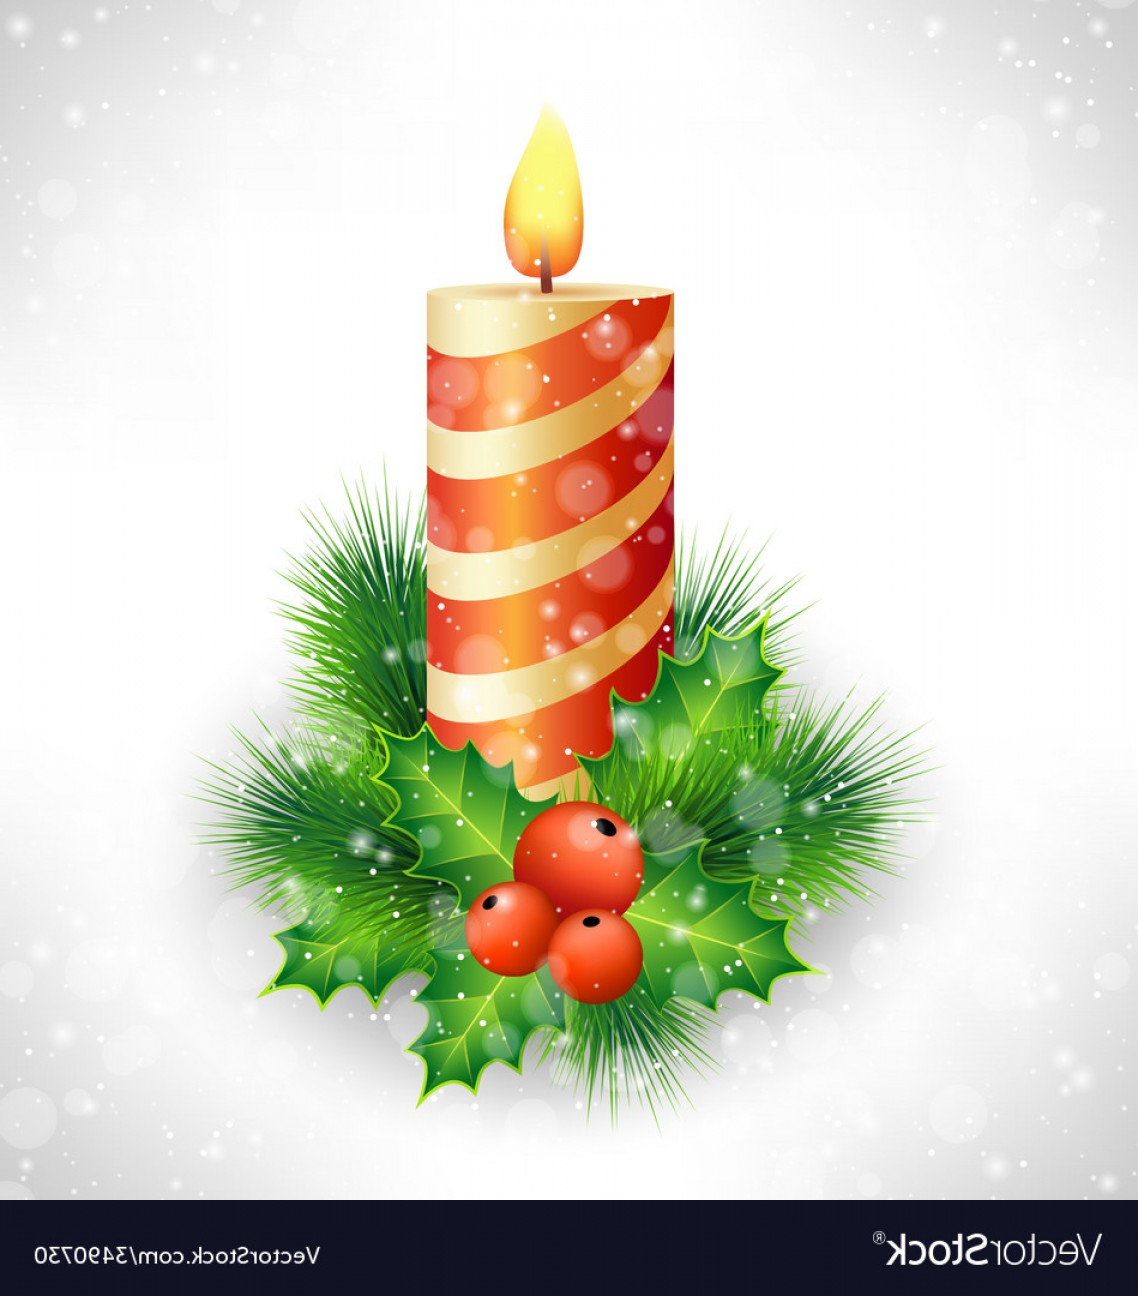 Vector-Based Grayscale Christmas: Christmas Candle With Holly And Pine On Grayscale Vector